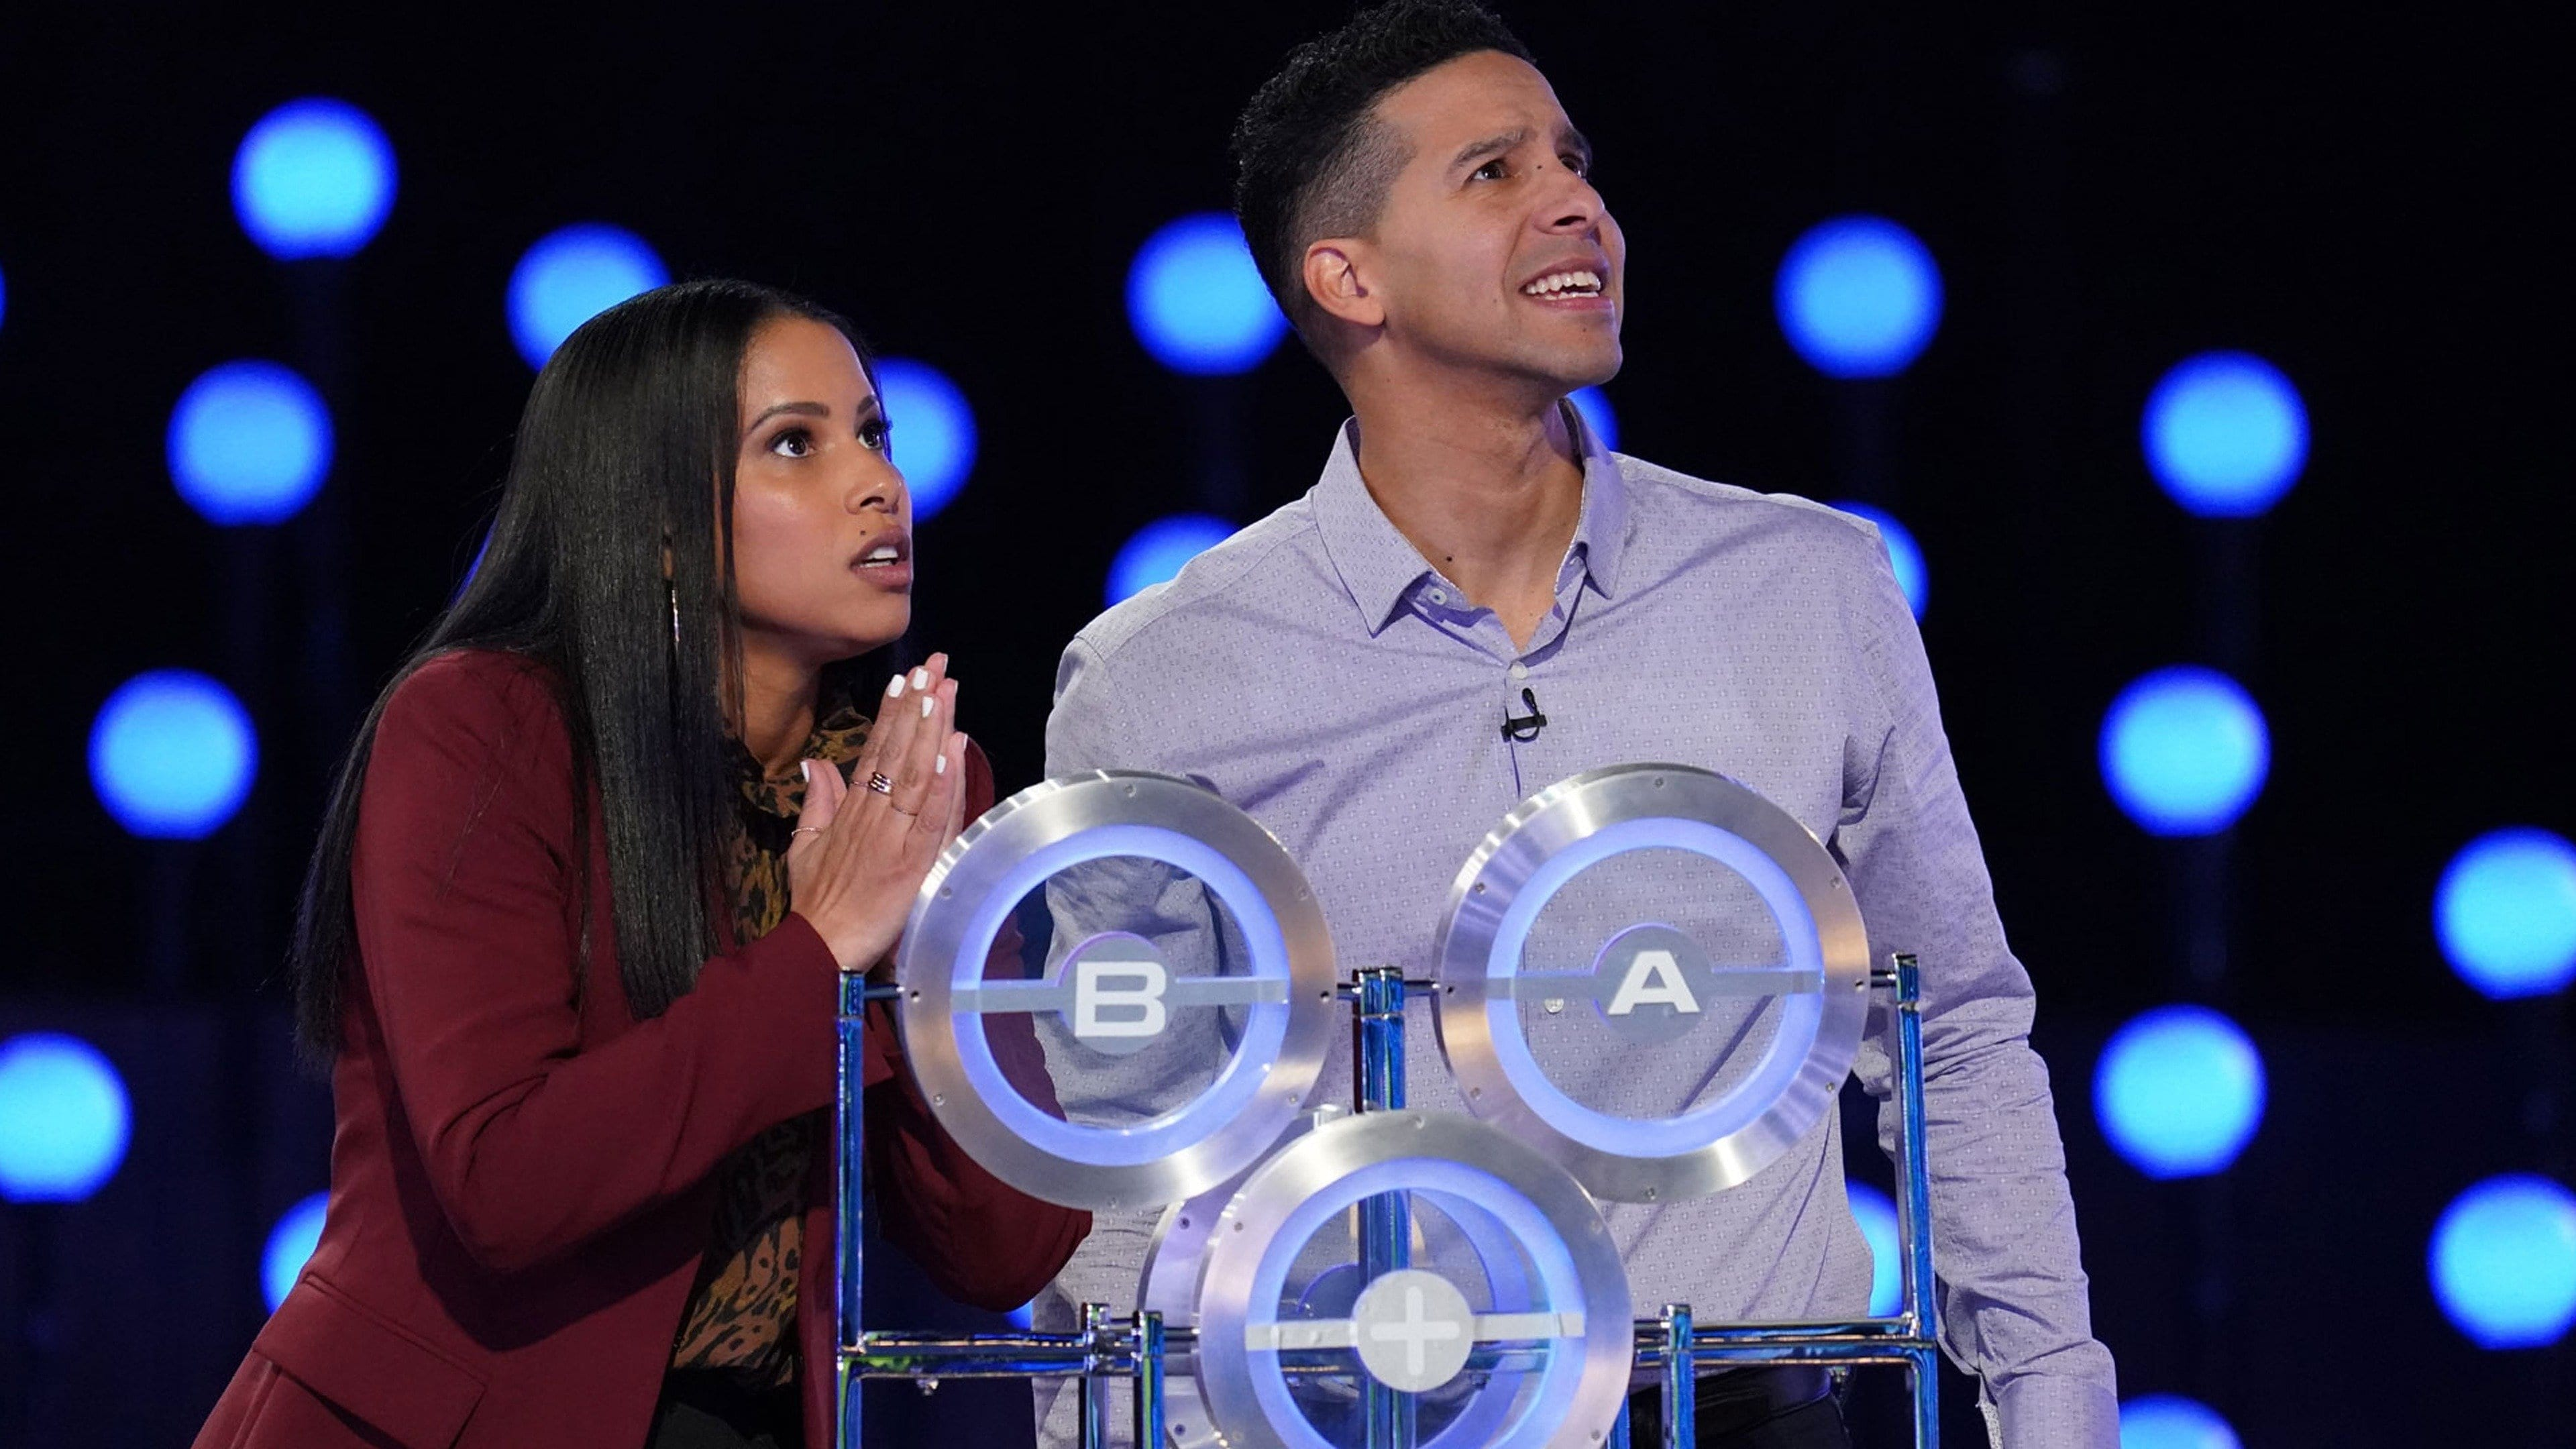 Brittany and CJ